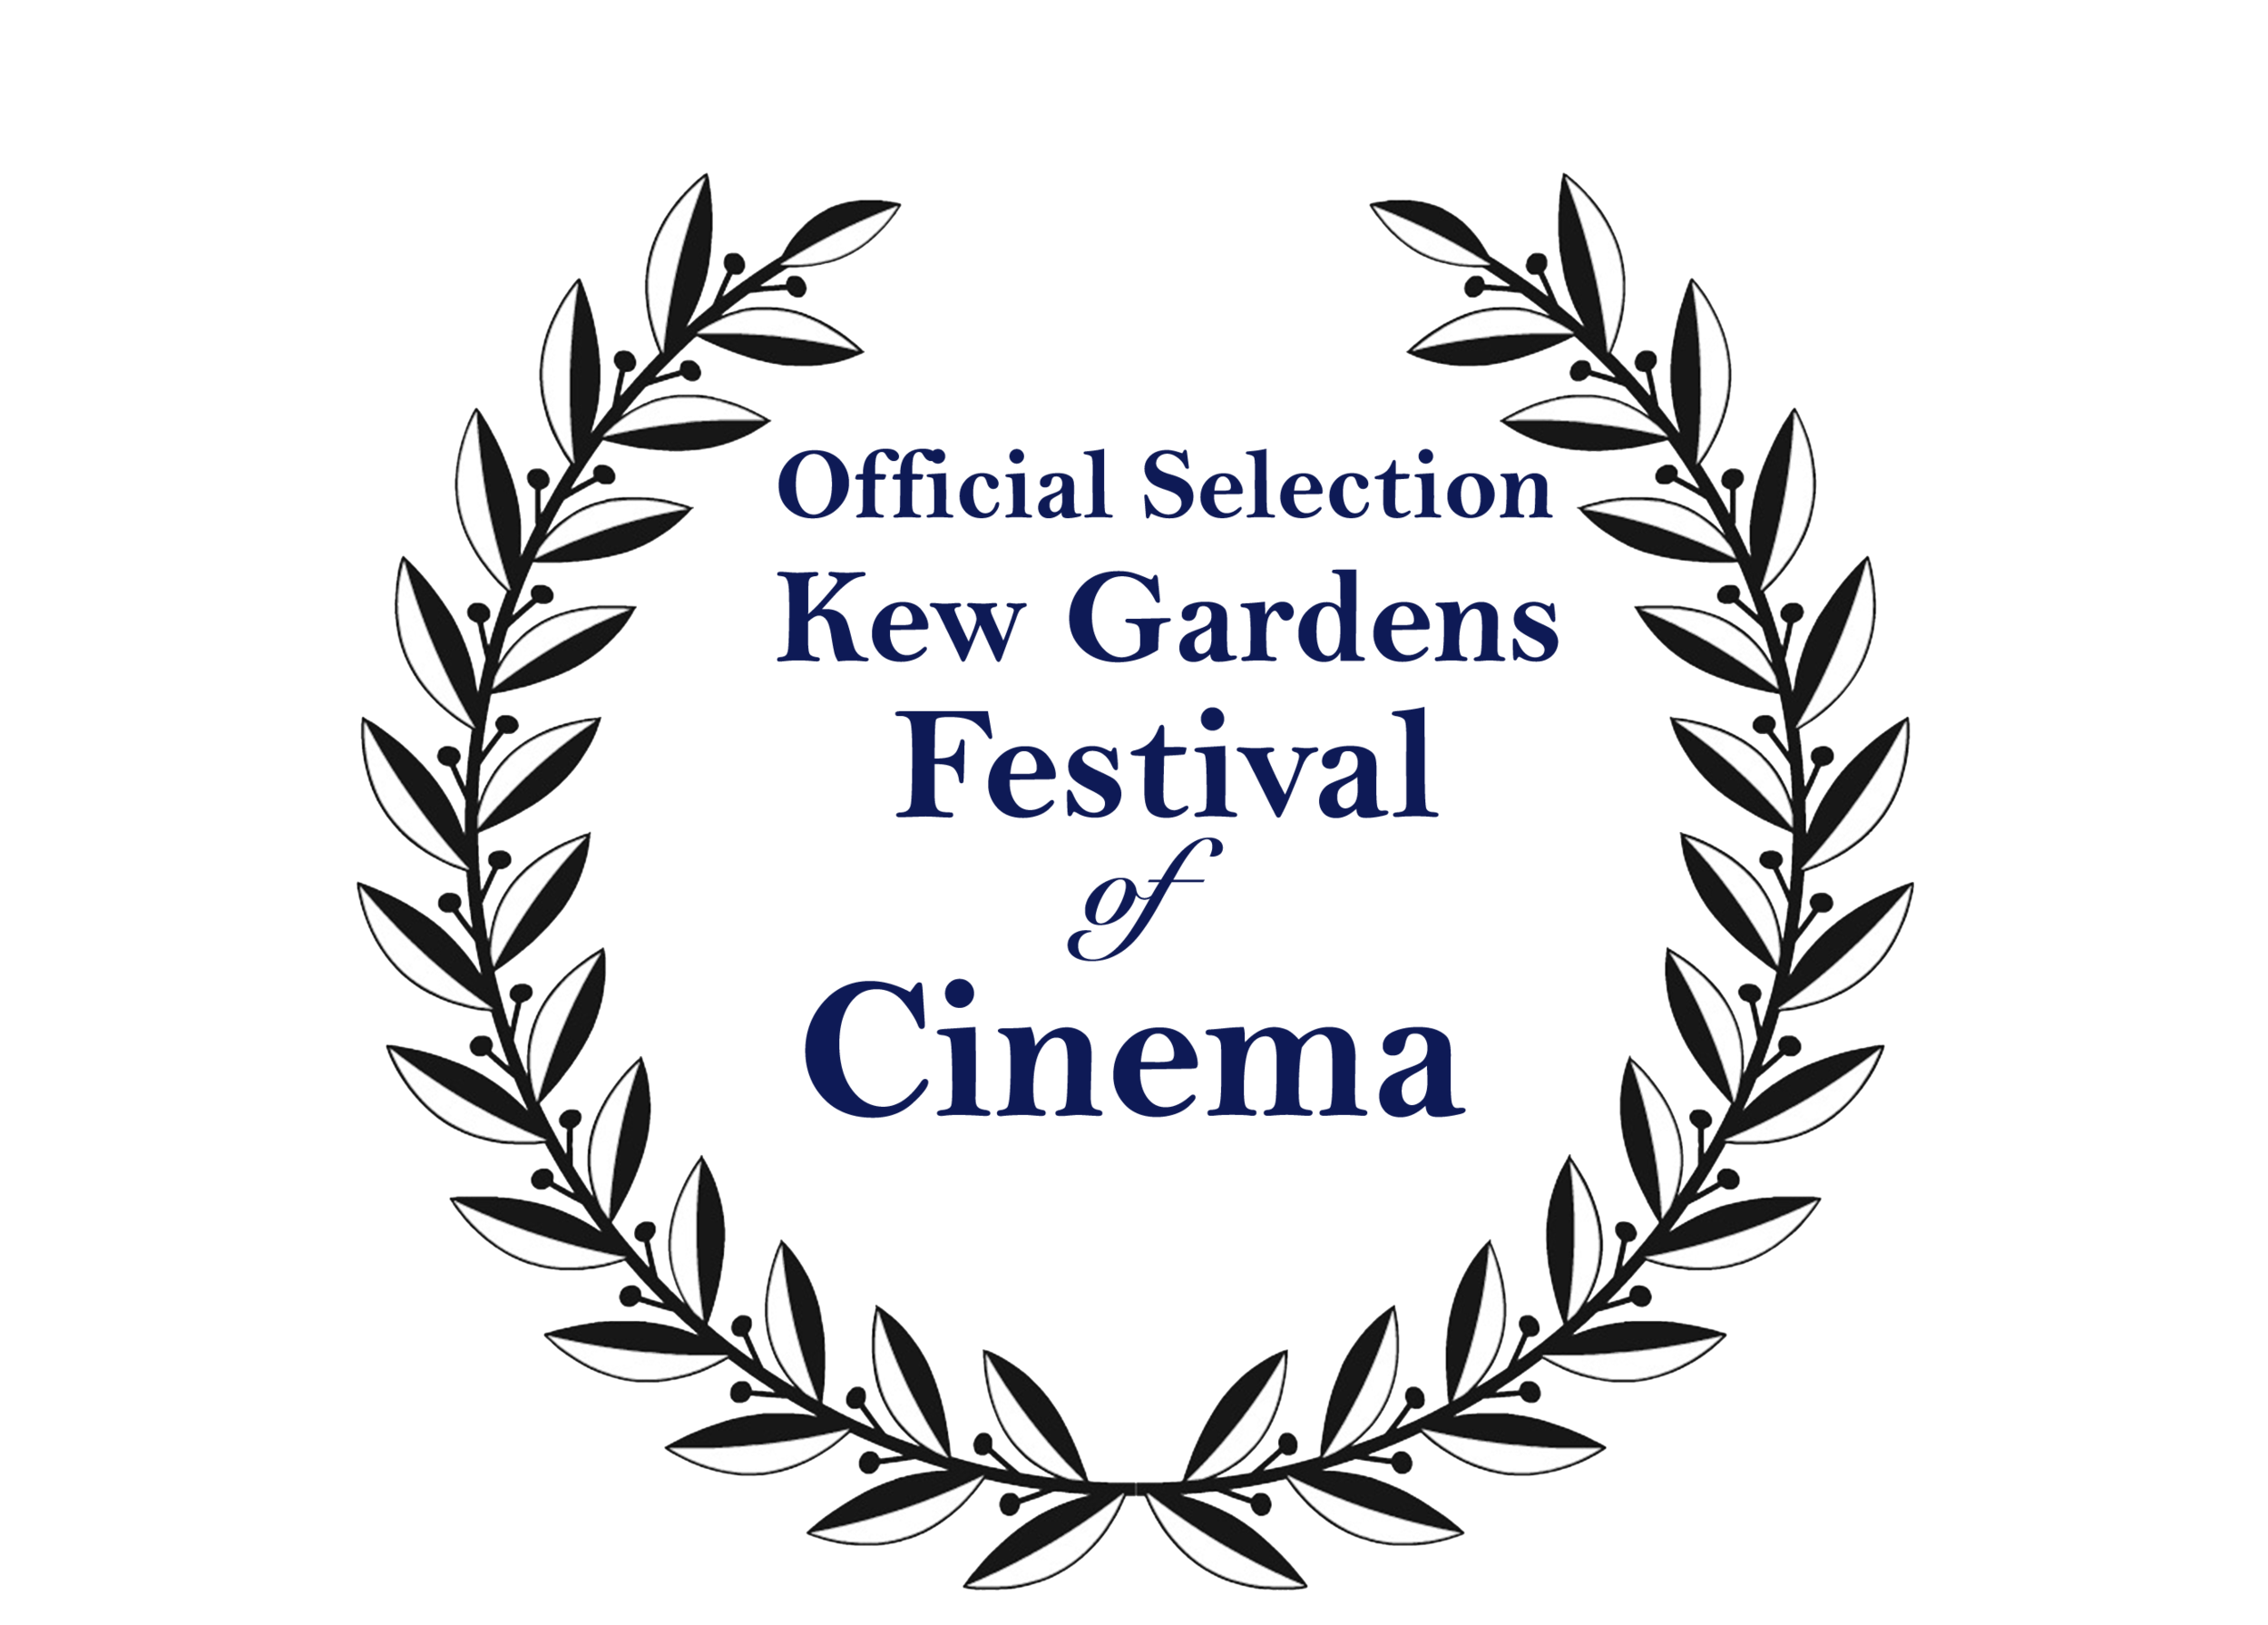 Kew Gardens Festival of Cinema_Black.png